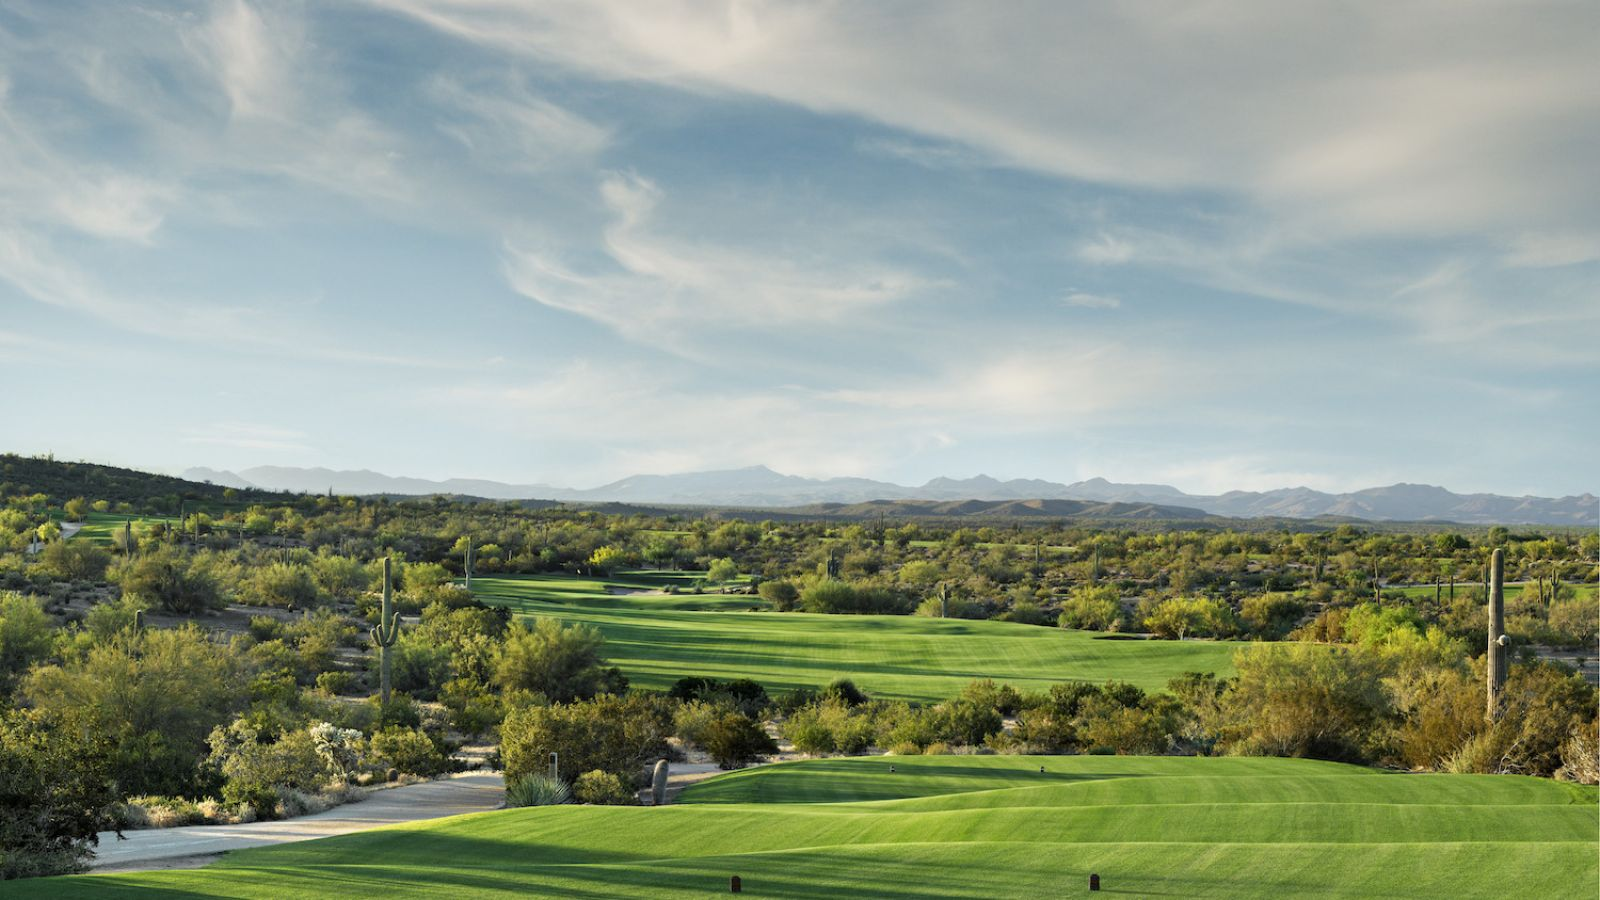 We-Ko-Pa Resort and Conference Center - Arizona golf packages